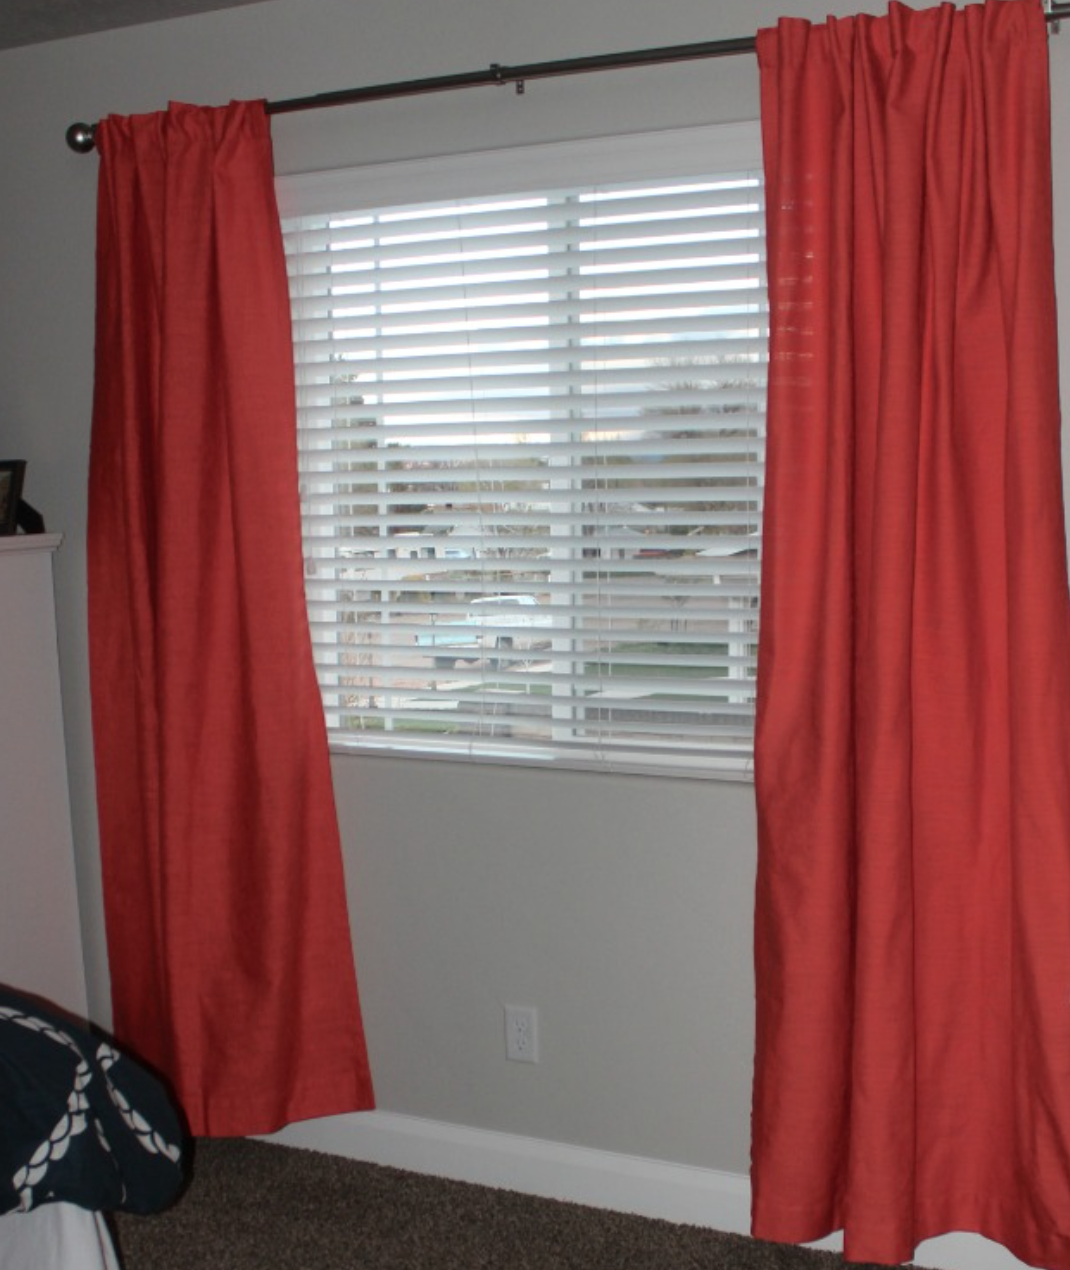 Curtain lengths puddle - What A Difference Drapes Make